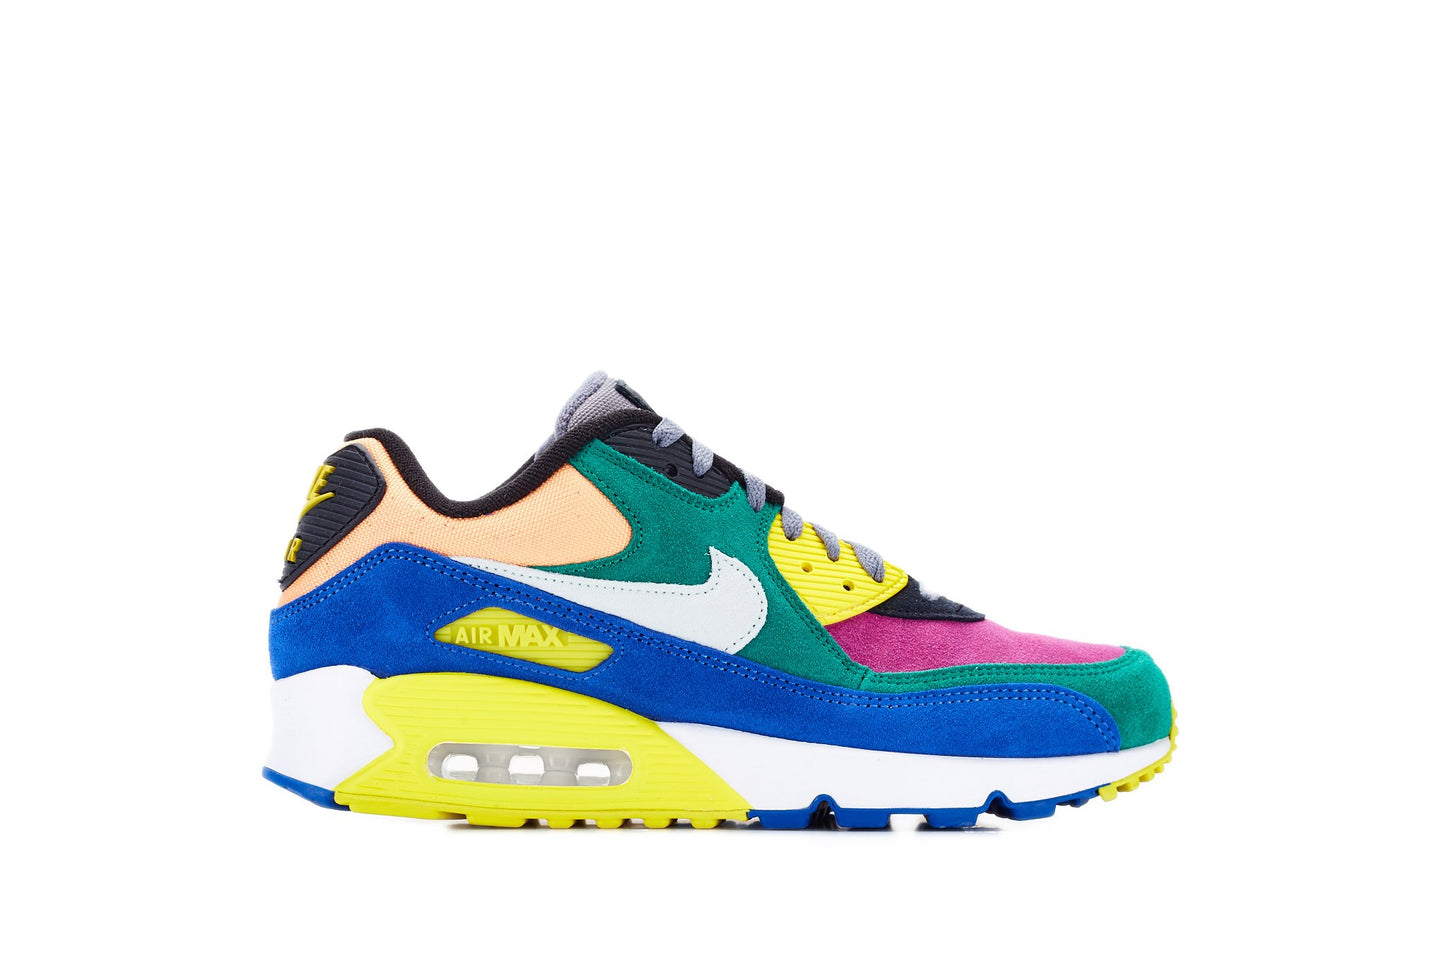 Air Max 90 QS Viotech